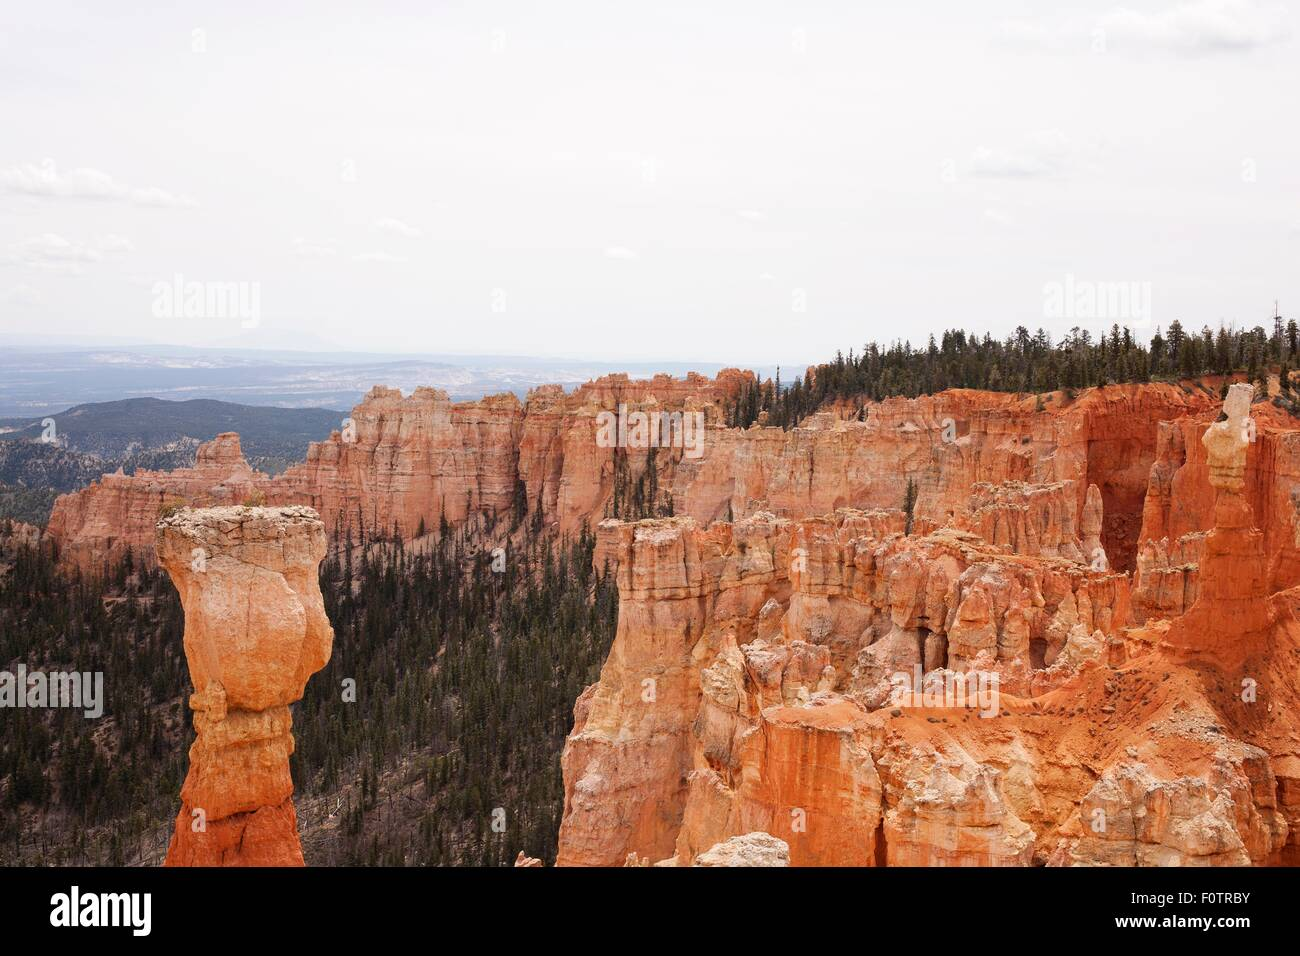 View of pillar rock formation in Bryce Canyon National Park, Utah, USA - Stock Image